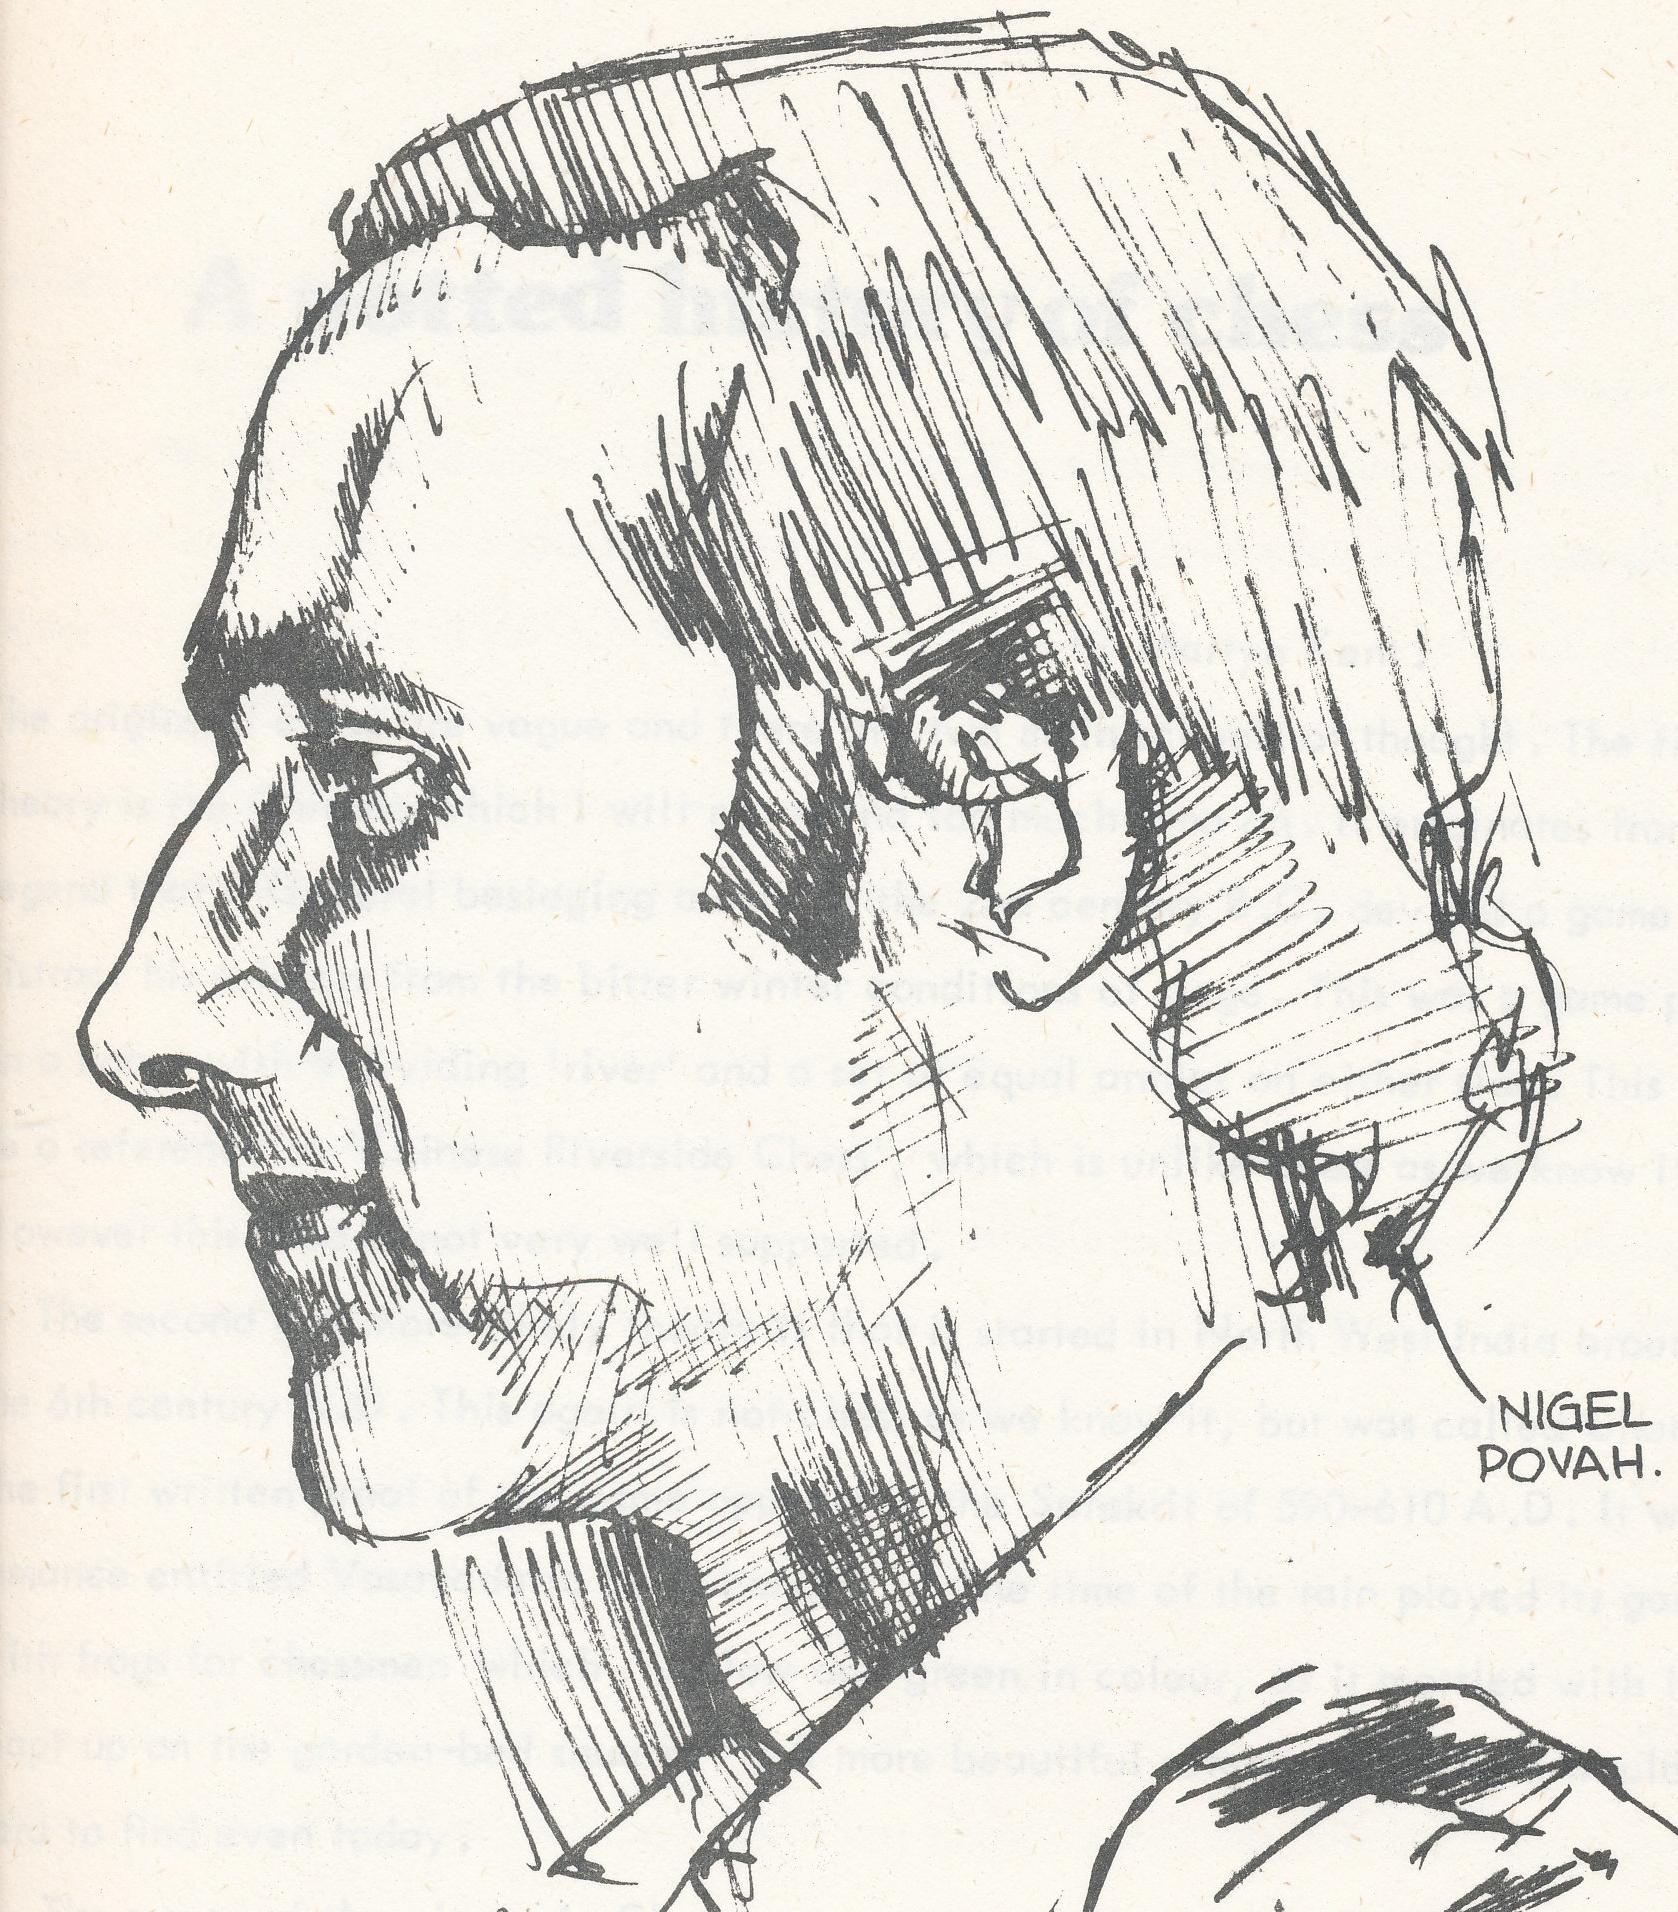 Nigel Povah, from Knightmare, Volume 2 (1976-77) drawn by Chris Jones.